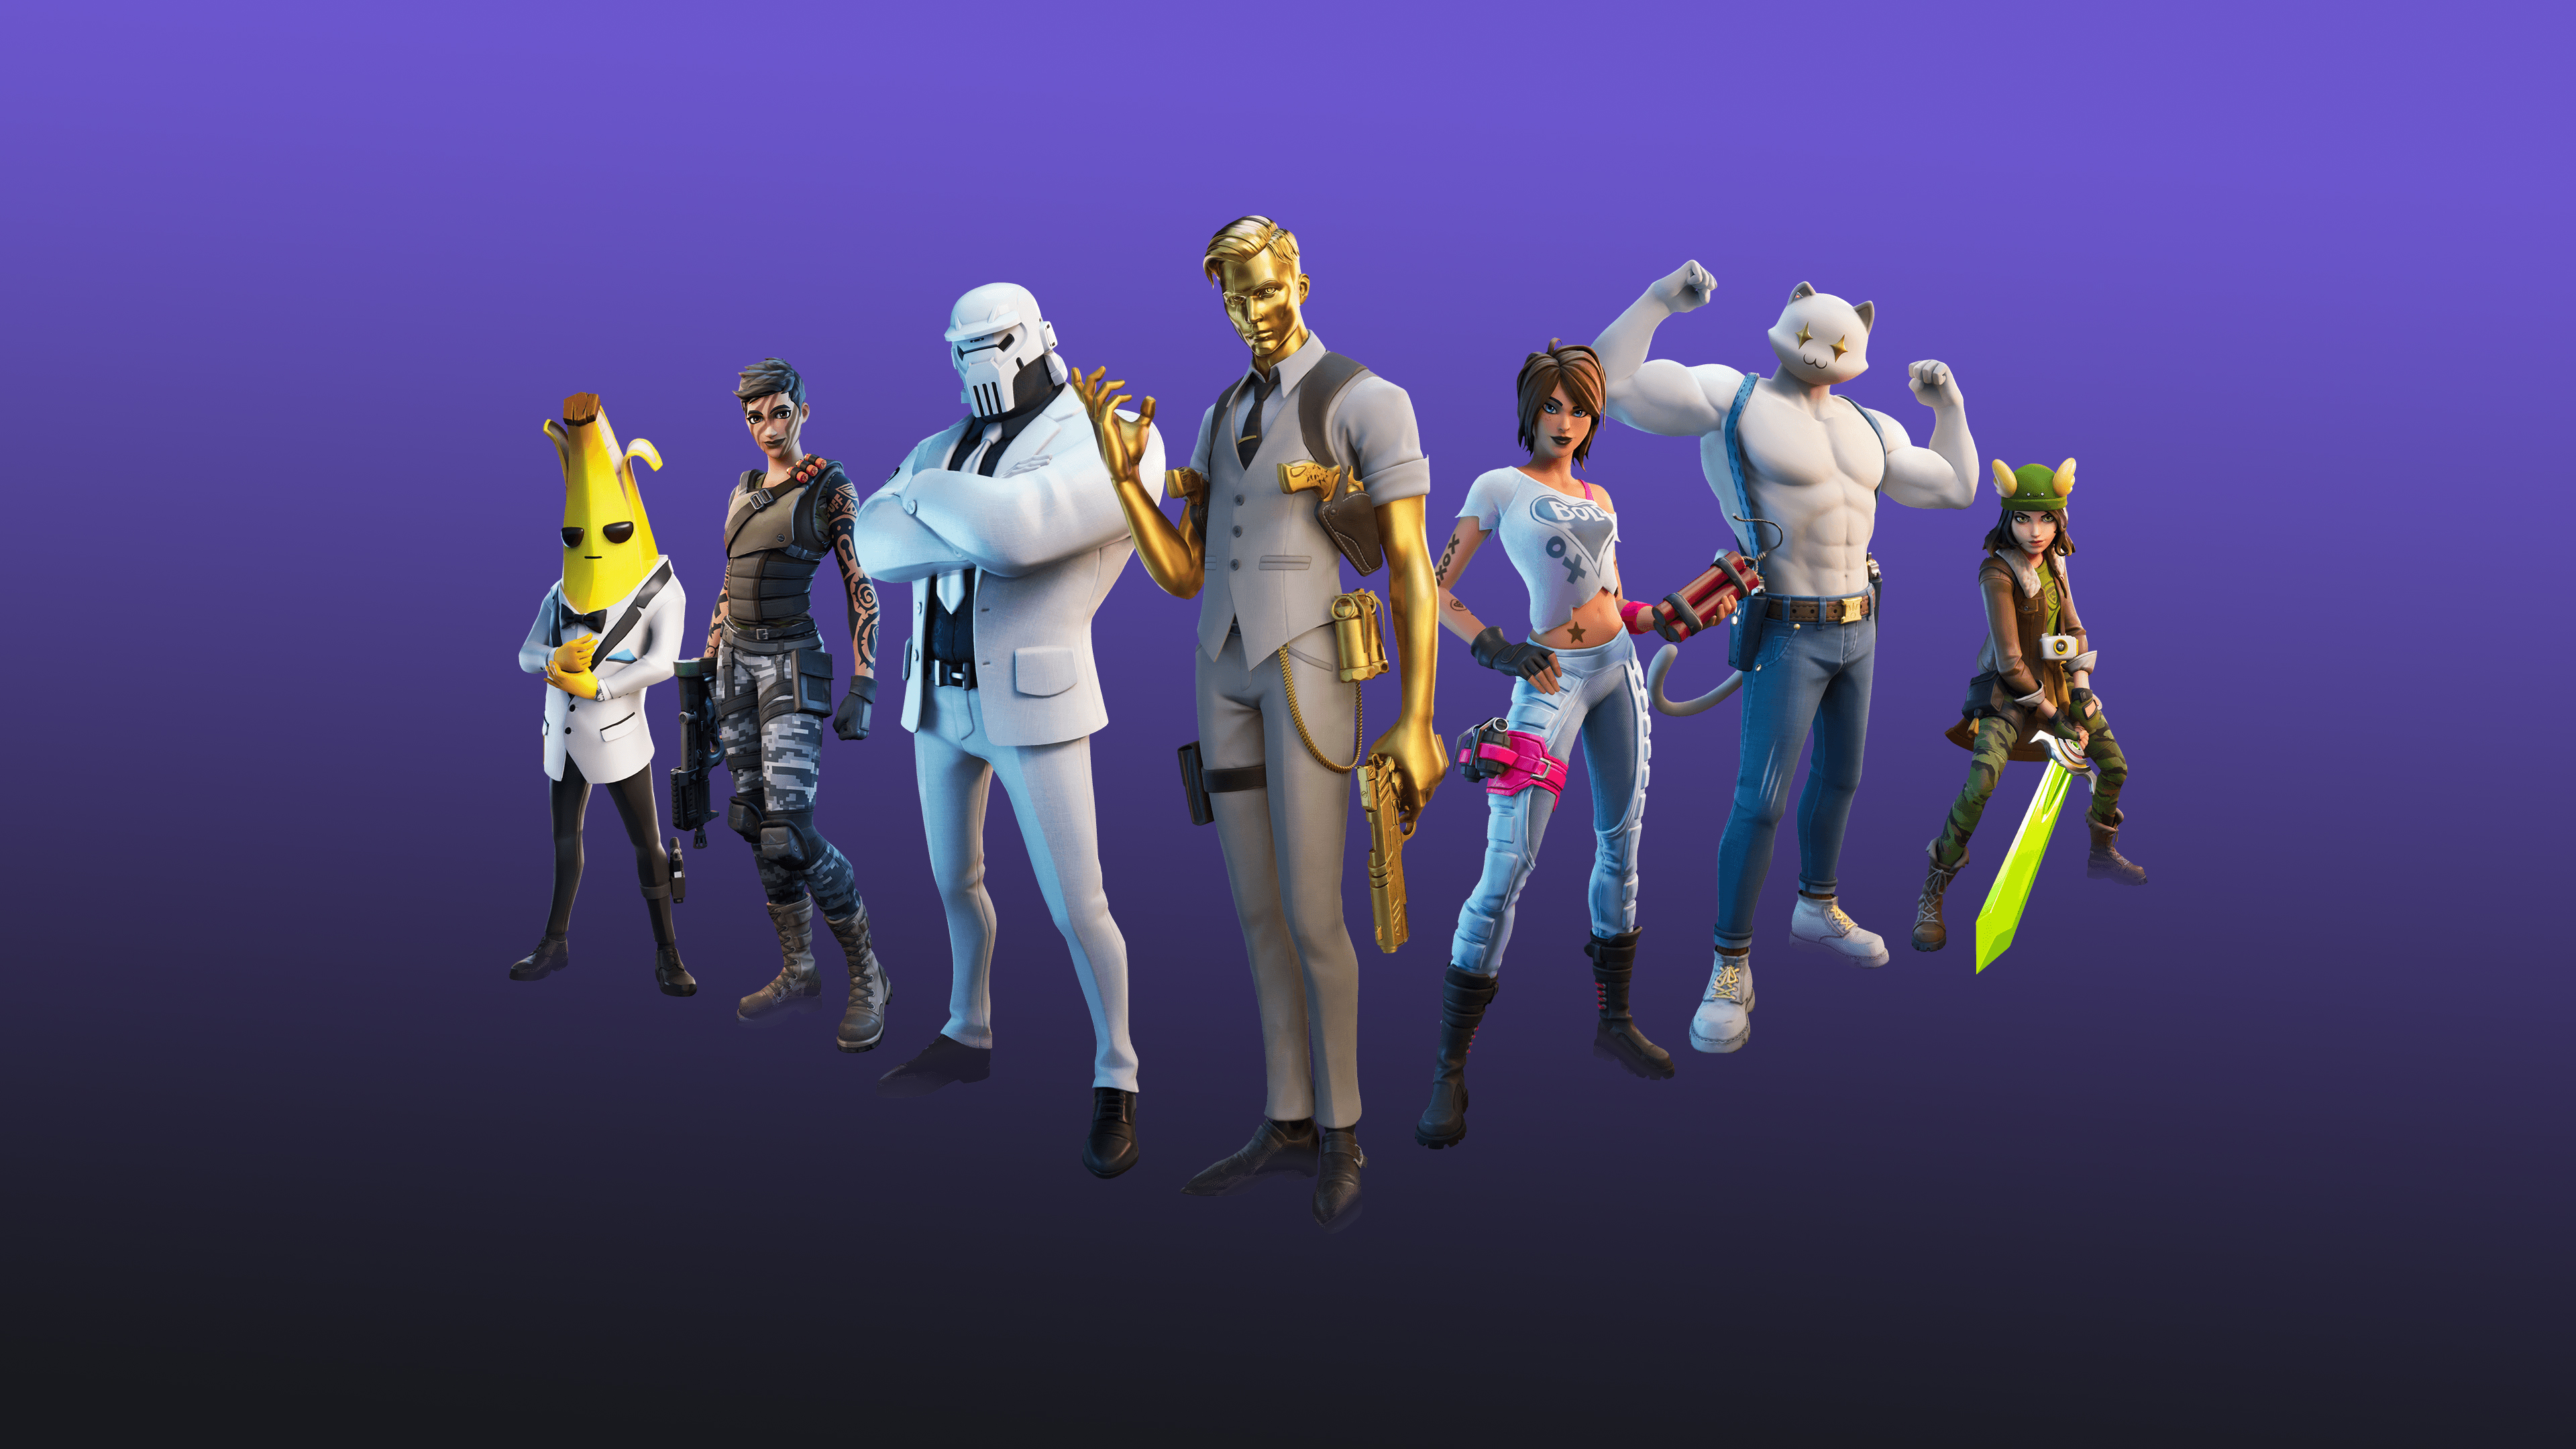 Chapter 2 Season 2 Fortnite 4k Wallpaper Hd Games 4k Wallpapers Images Photos And Background